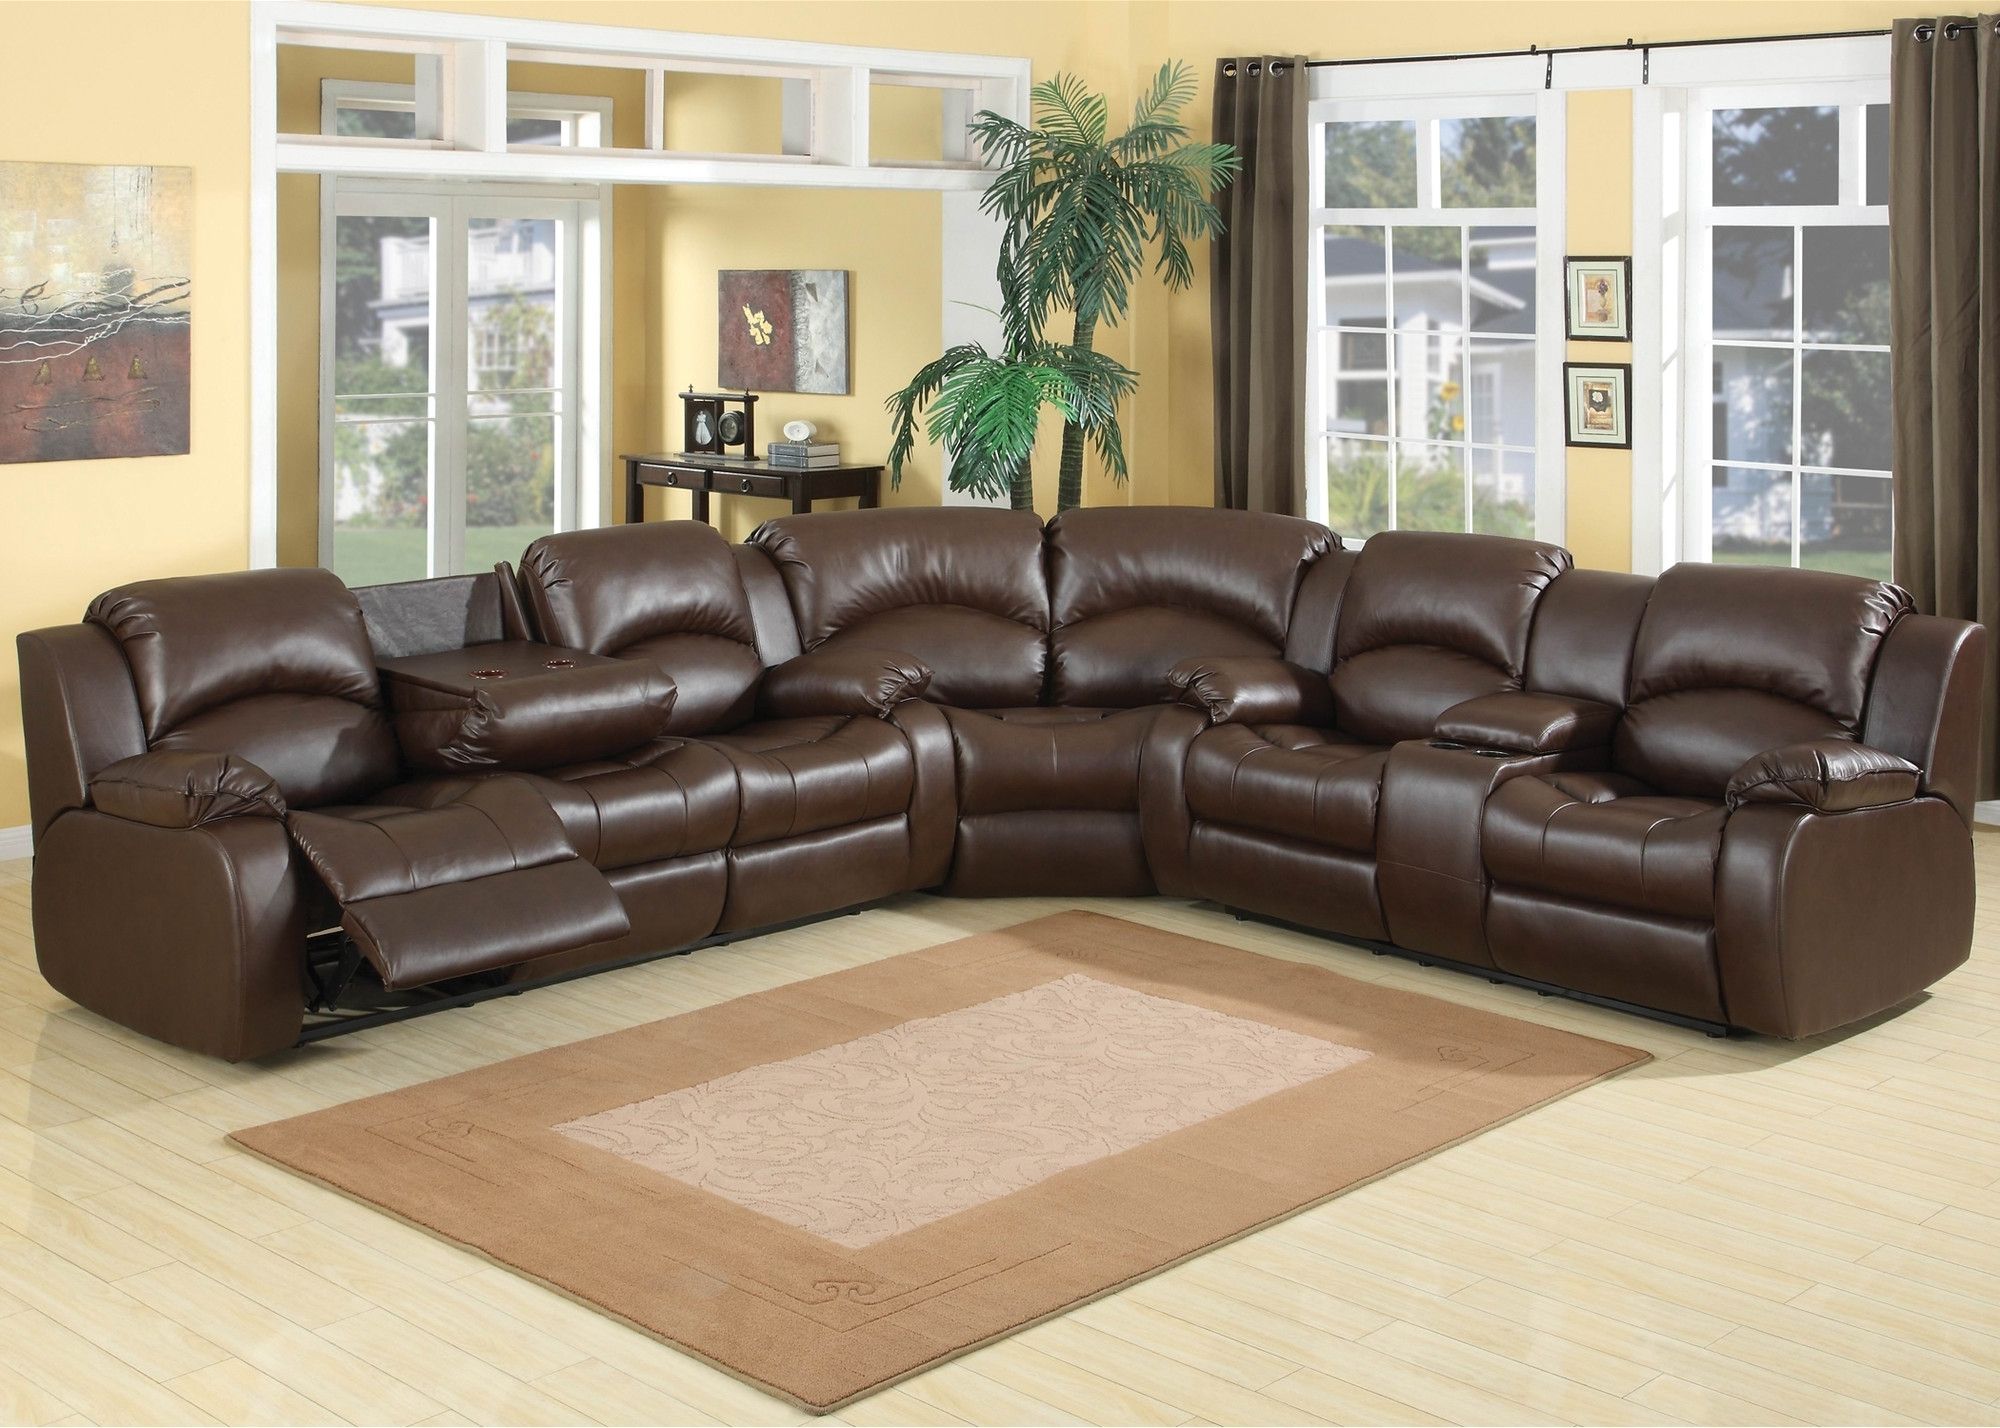 Brilliant Sectional Sofas Under 600 – Mediasupload Intended For Newest Sectional Sofas Under  (View 2 of 15)